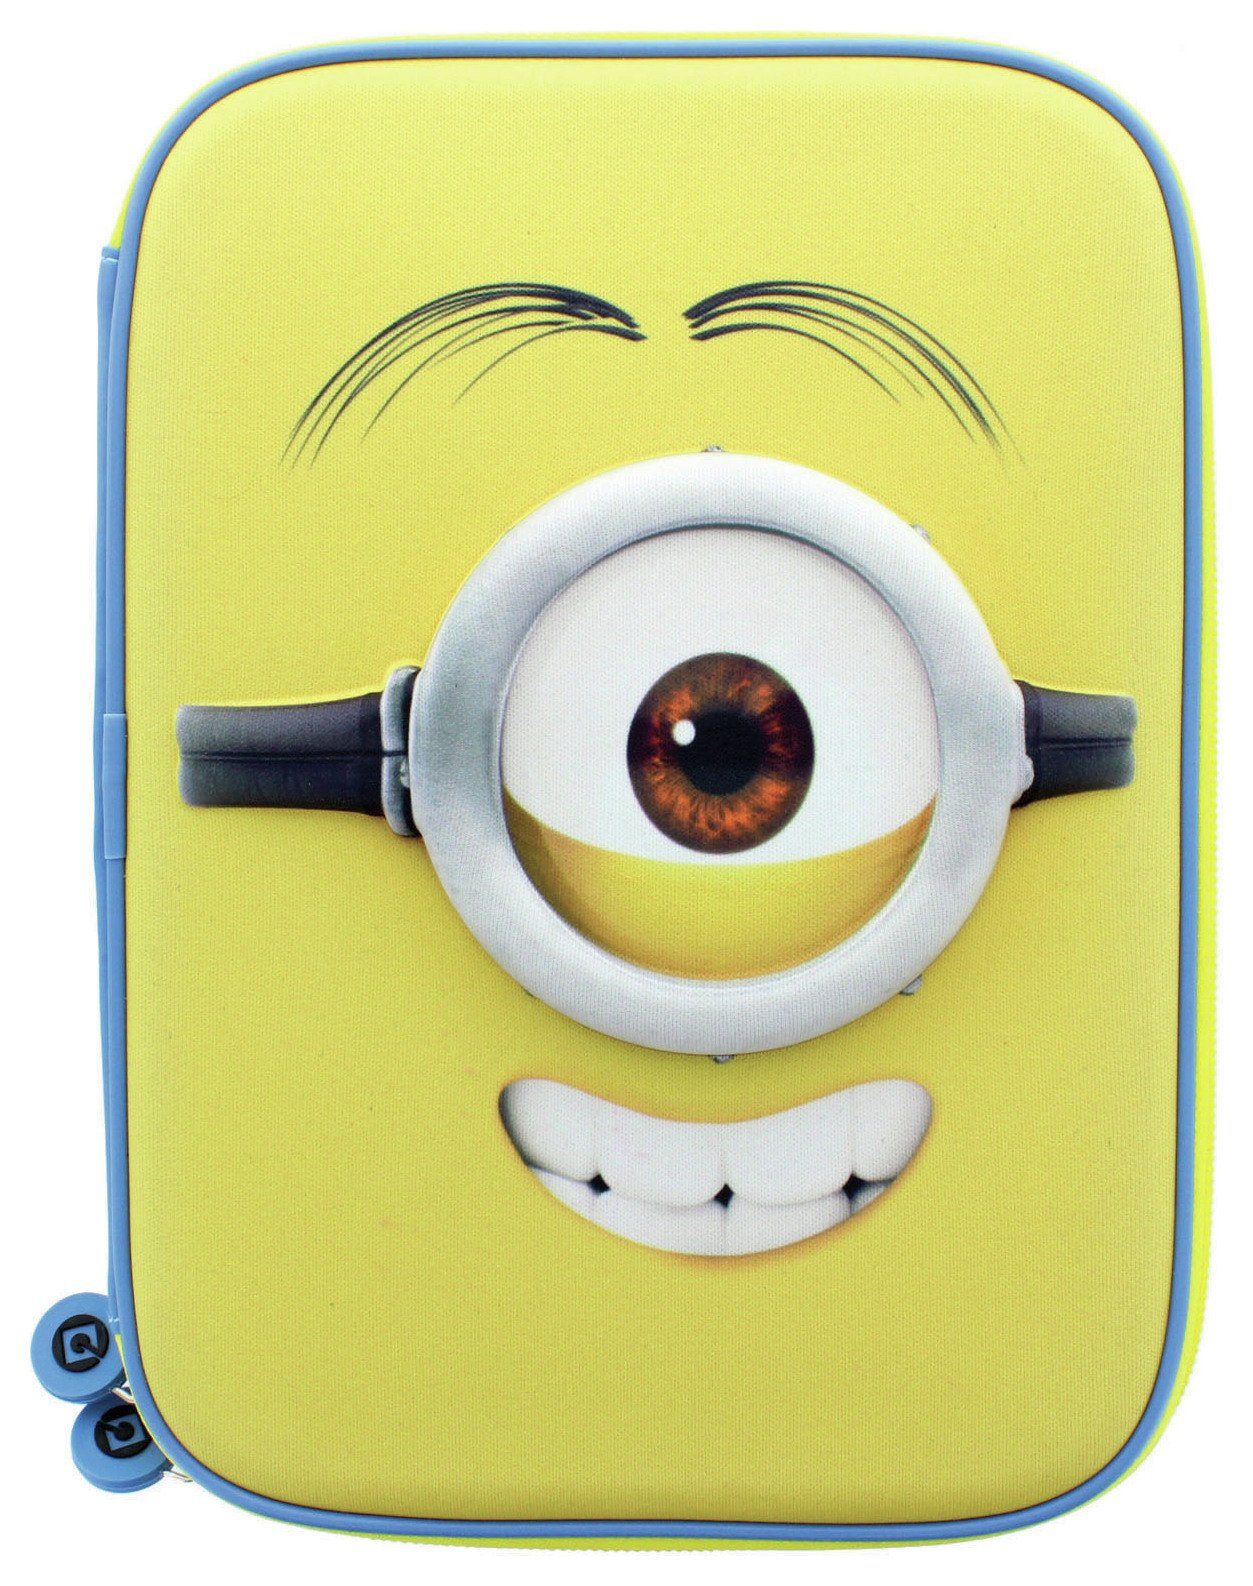 minions-uni-tab-8-eva-eye-storage-case-yellow